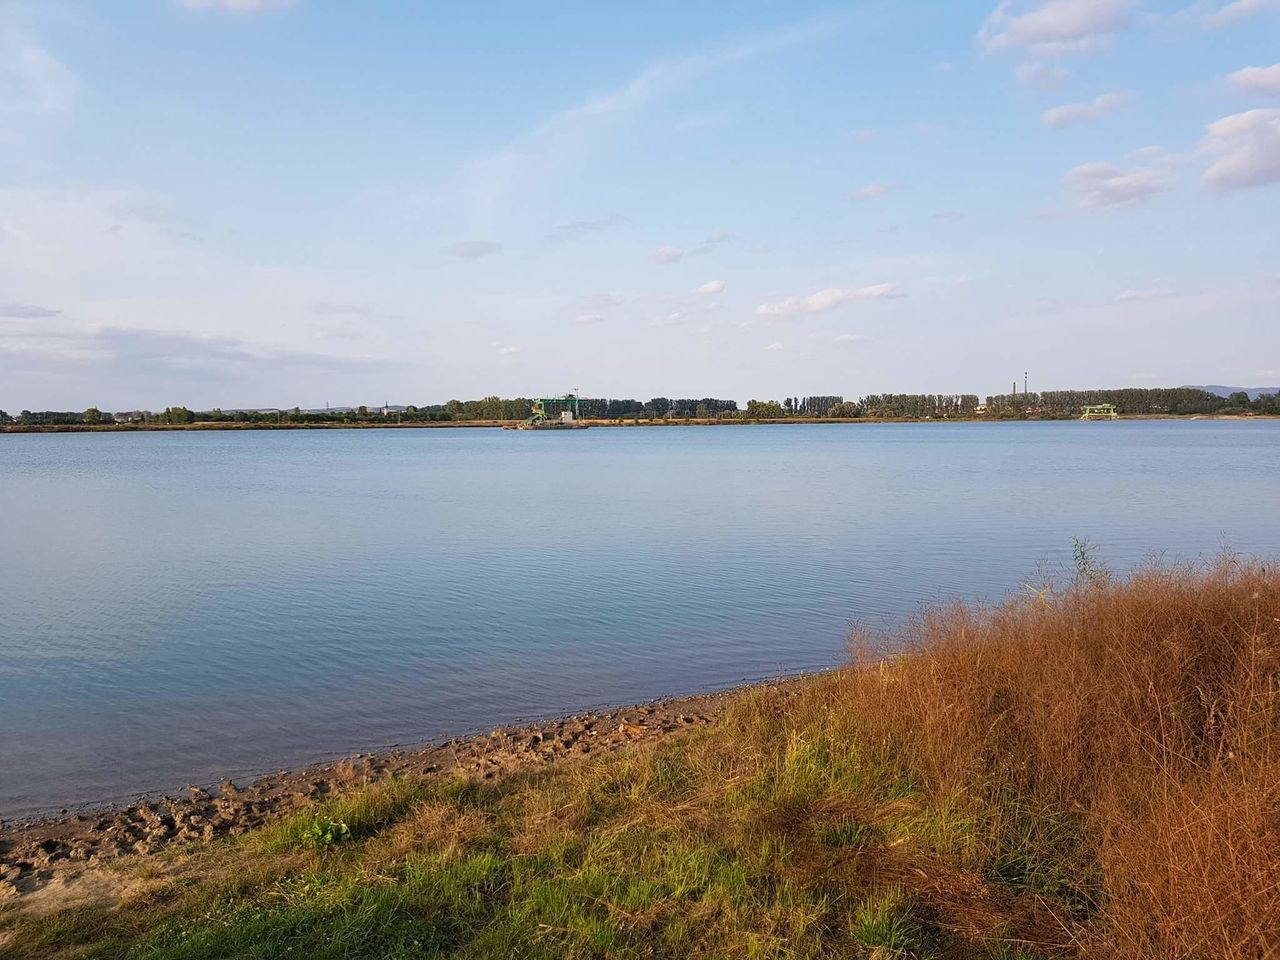 water, tranquil scene, nature, beauty in nature, tranquility, outdoors, scenics, grass, lake, day, sky, no people, landscape